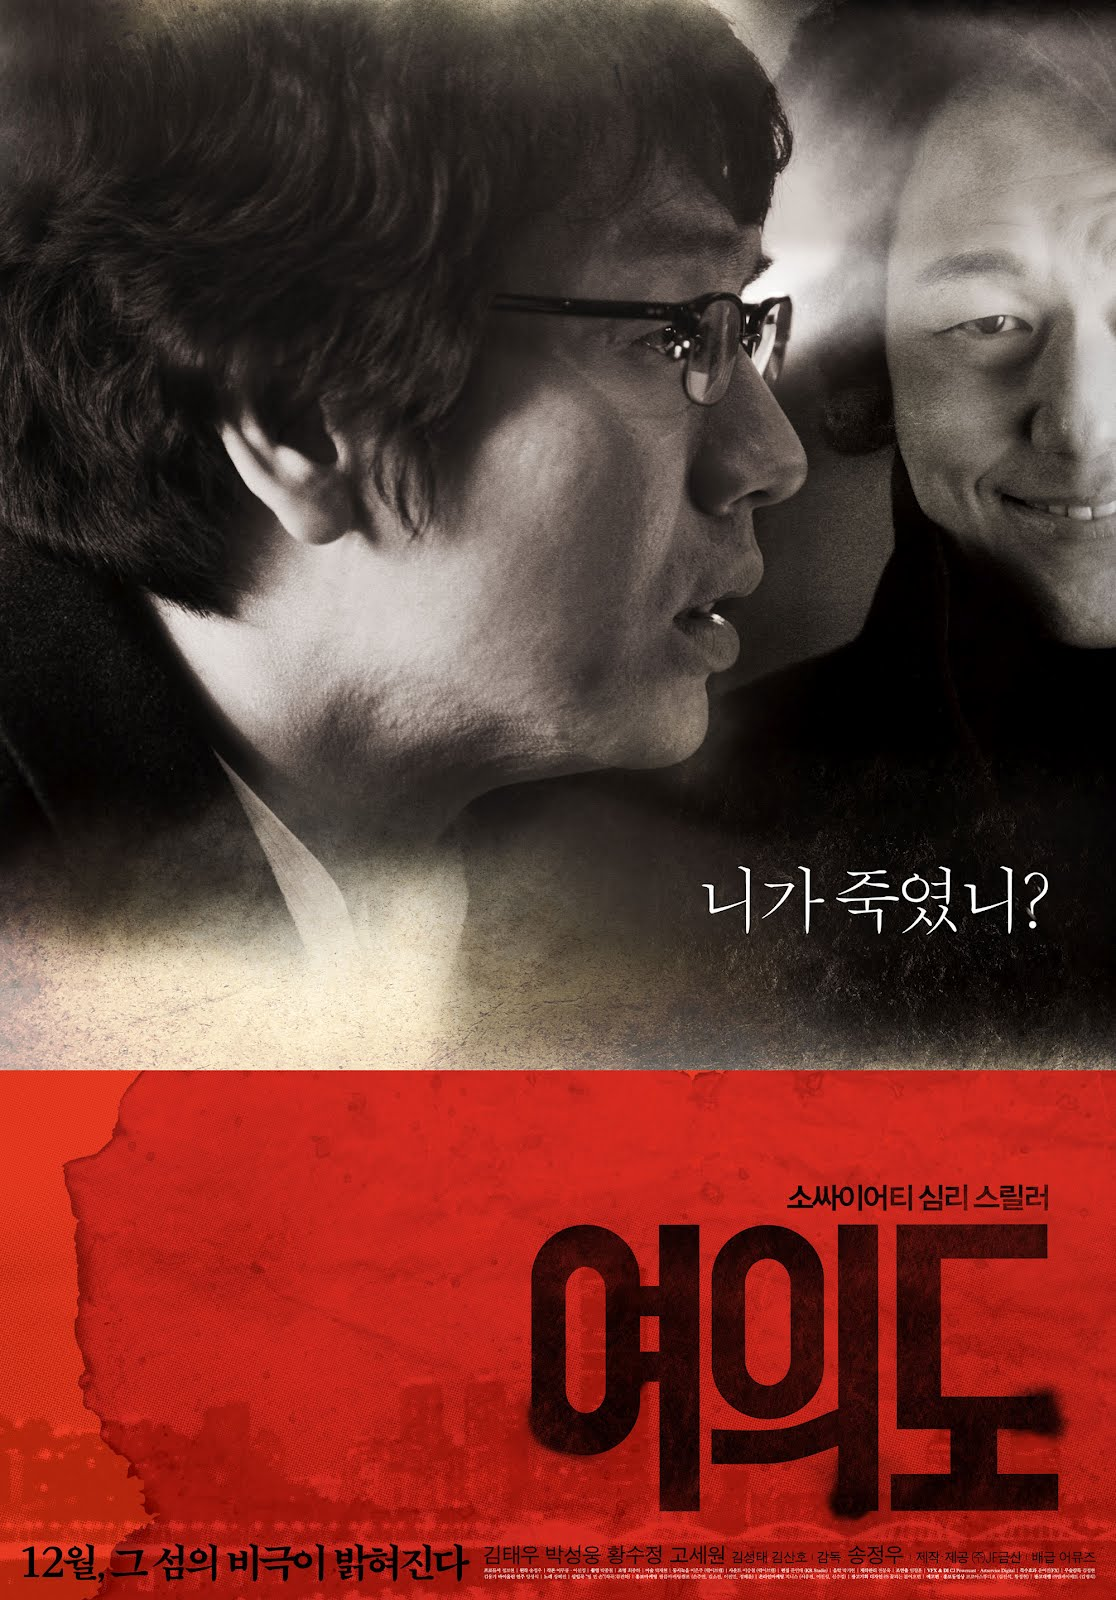 A Friend in Need (2010) A%2BFriend%2Bin%2BNeed%2Bdvd%2Bcover